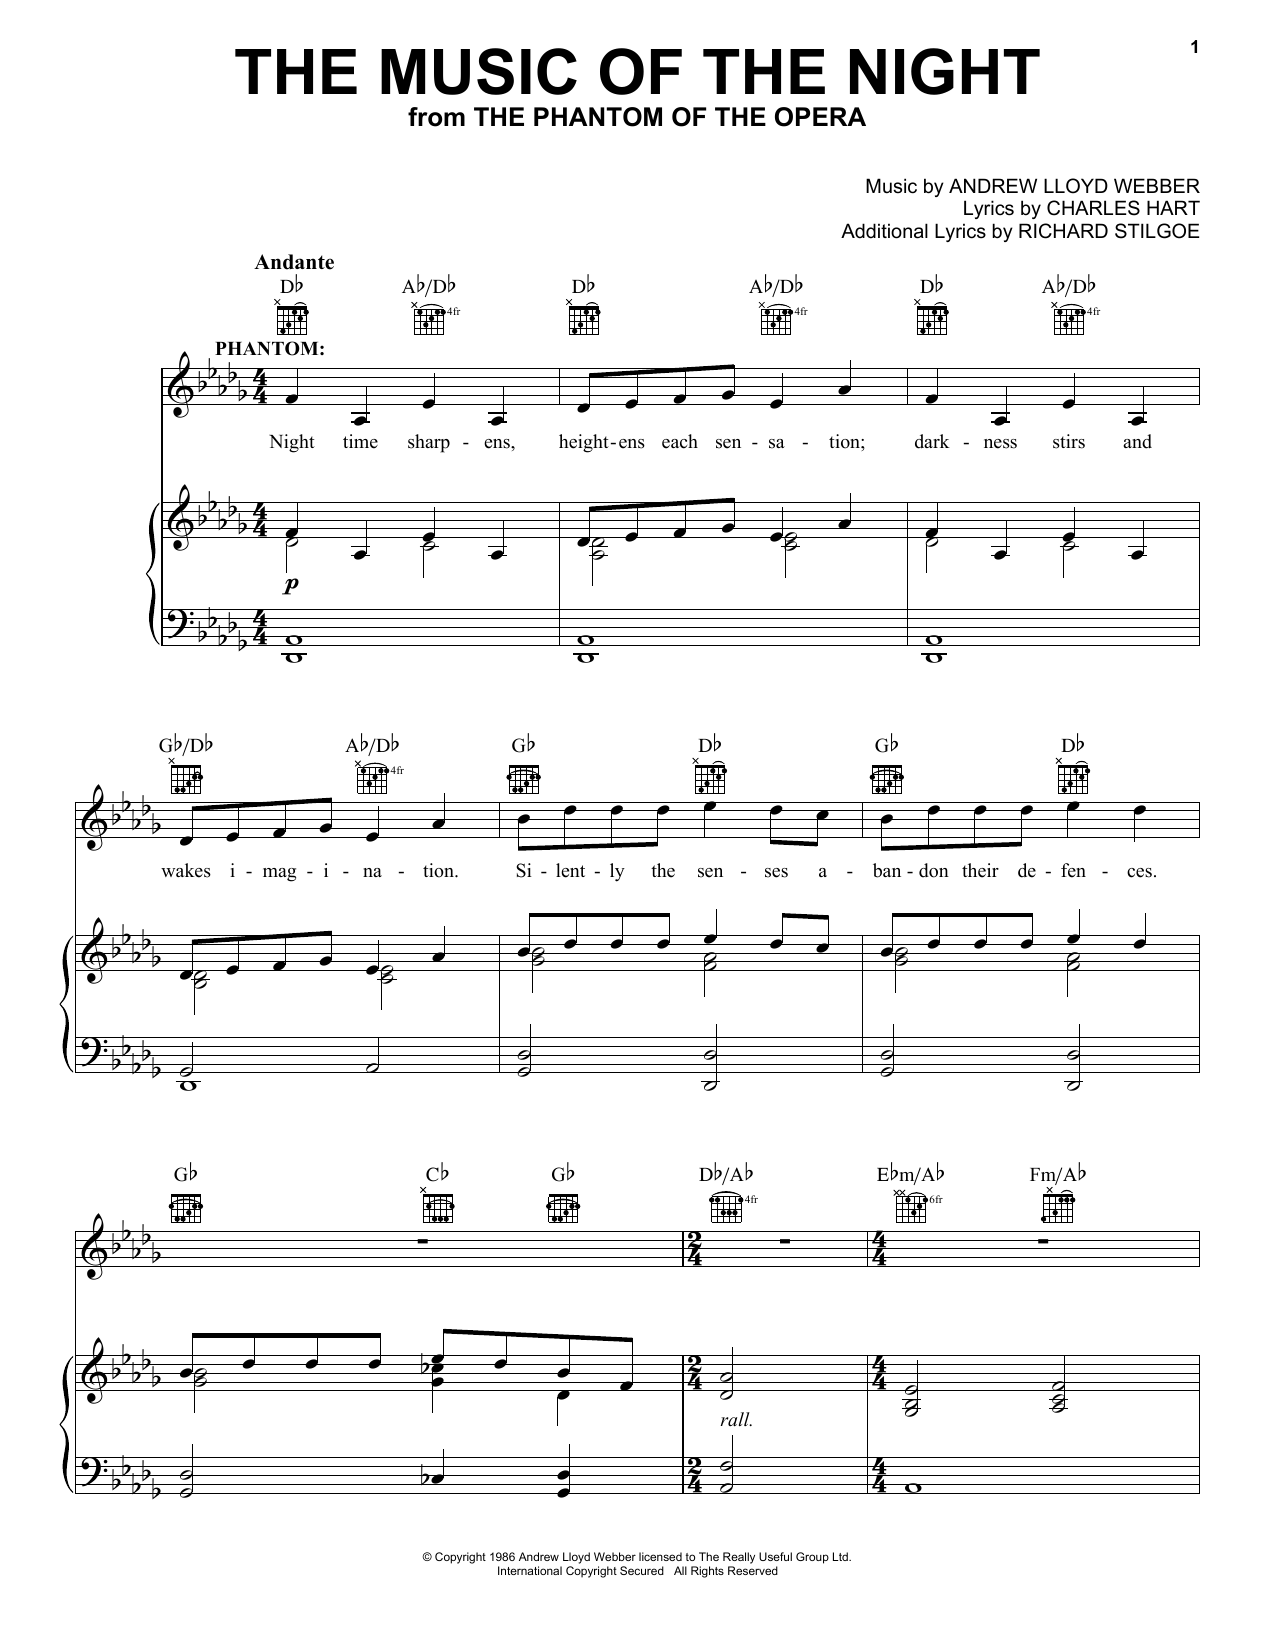 Andrew Lloyd Webber The Music Of The Night sheet music notes and chords. Download Printable PDF.